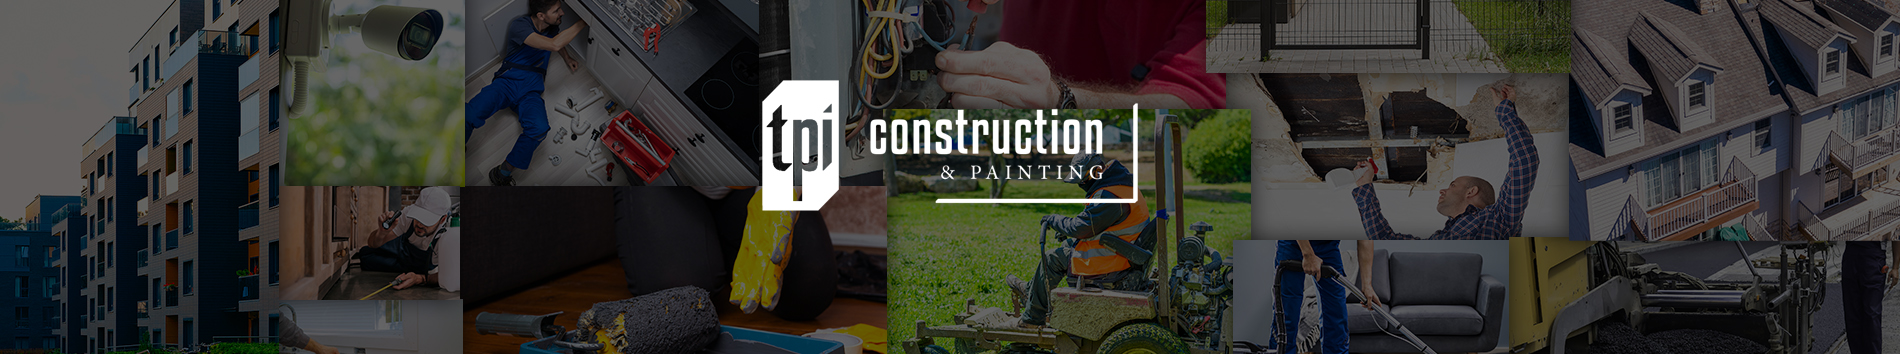 TPI Construction & Painting Inc